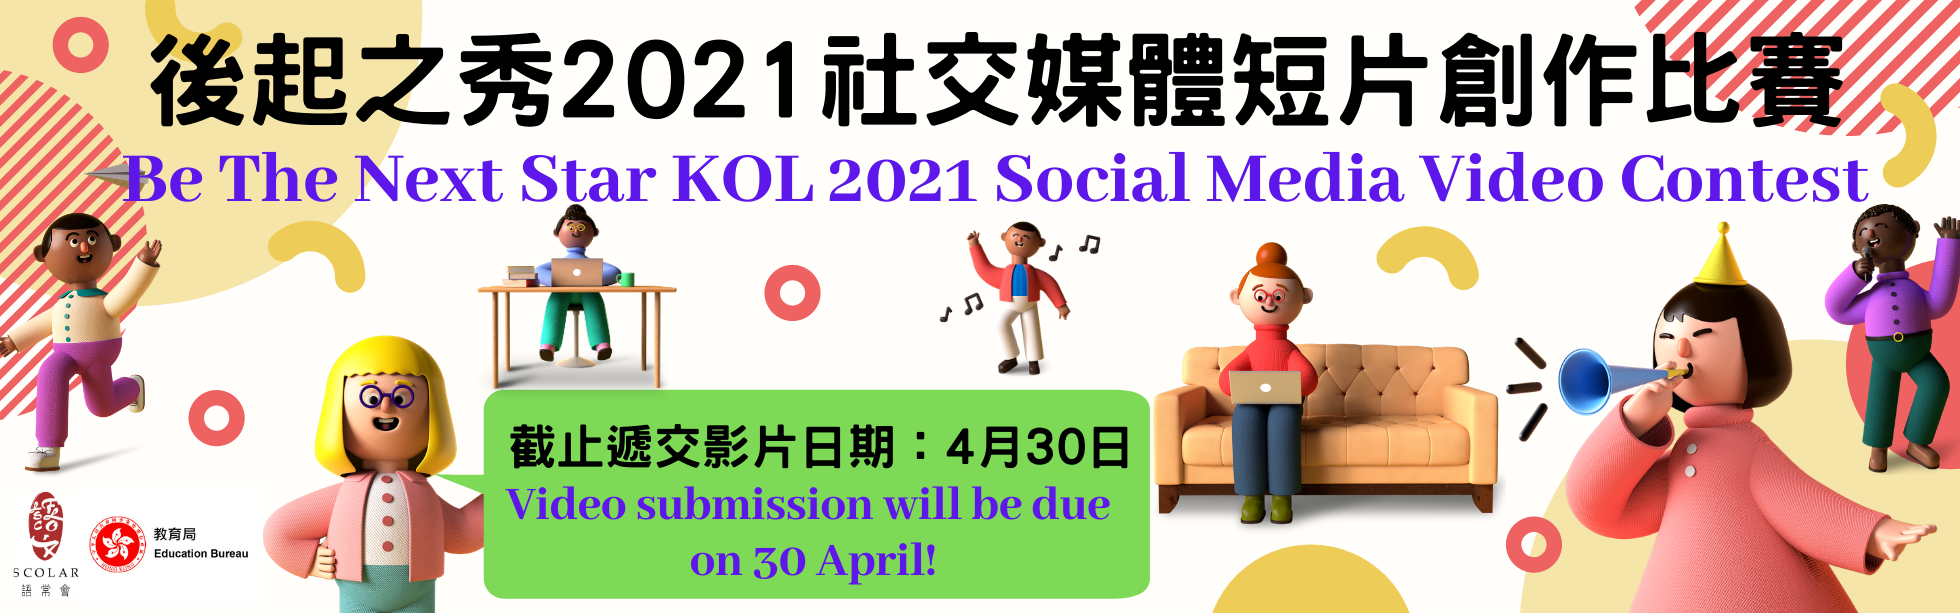 Be The Next Star KOL 2021 Social Media Video Contest